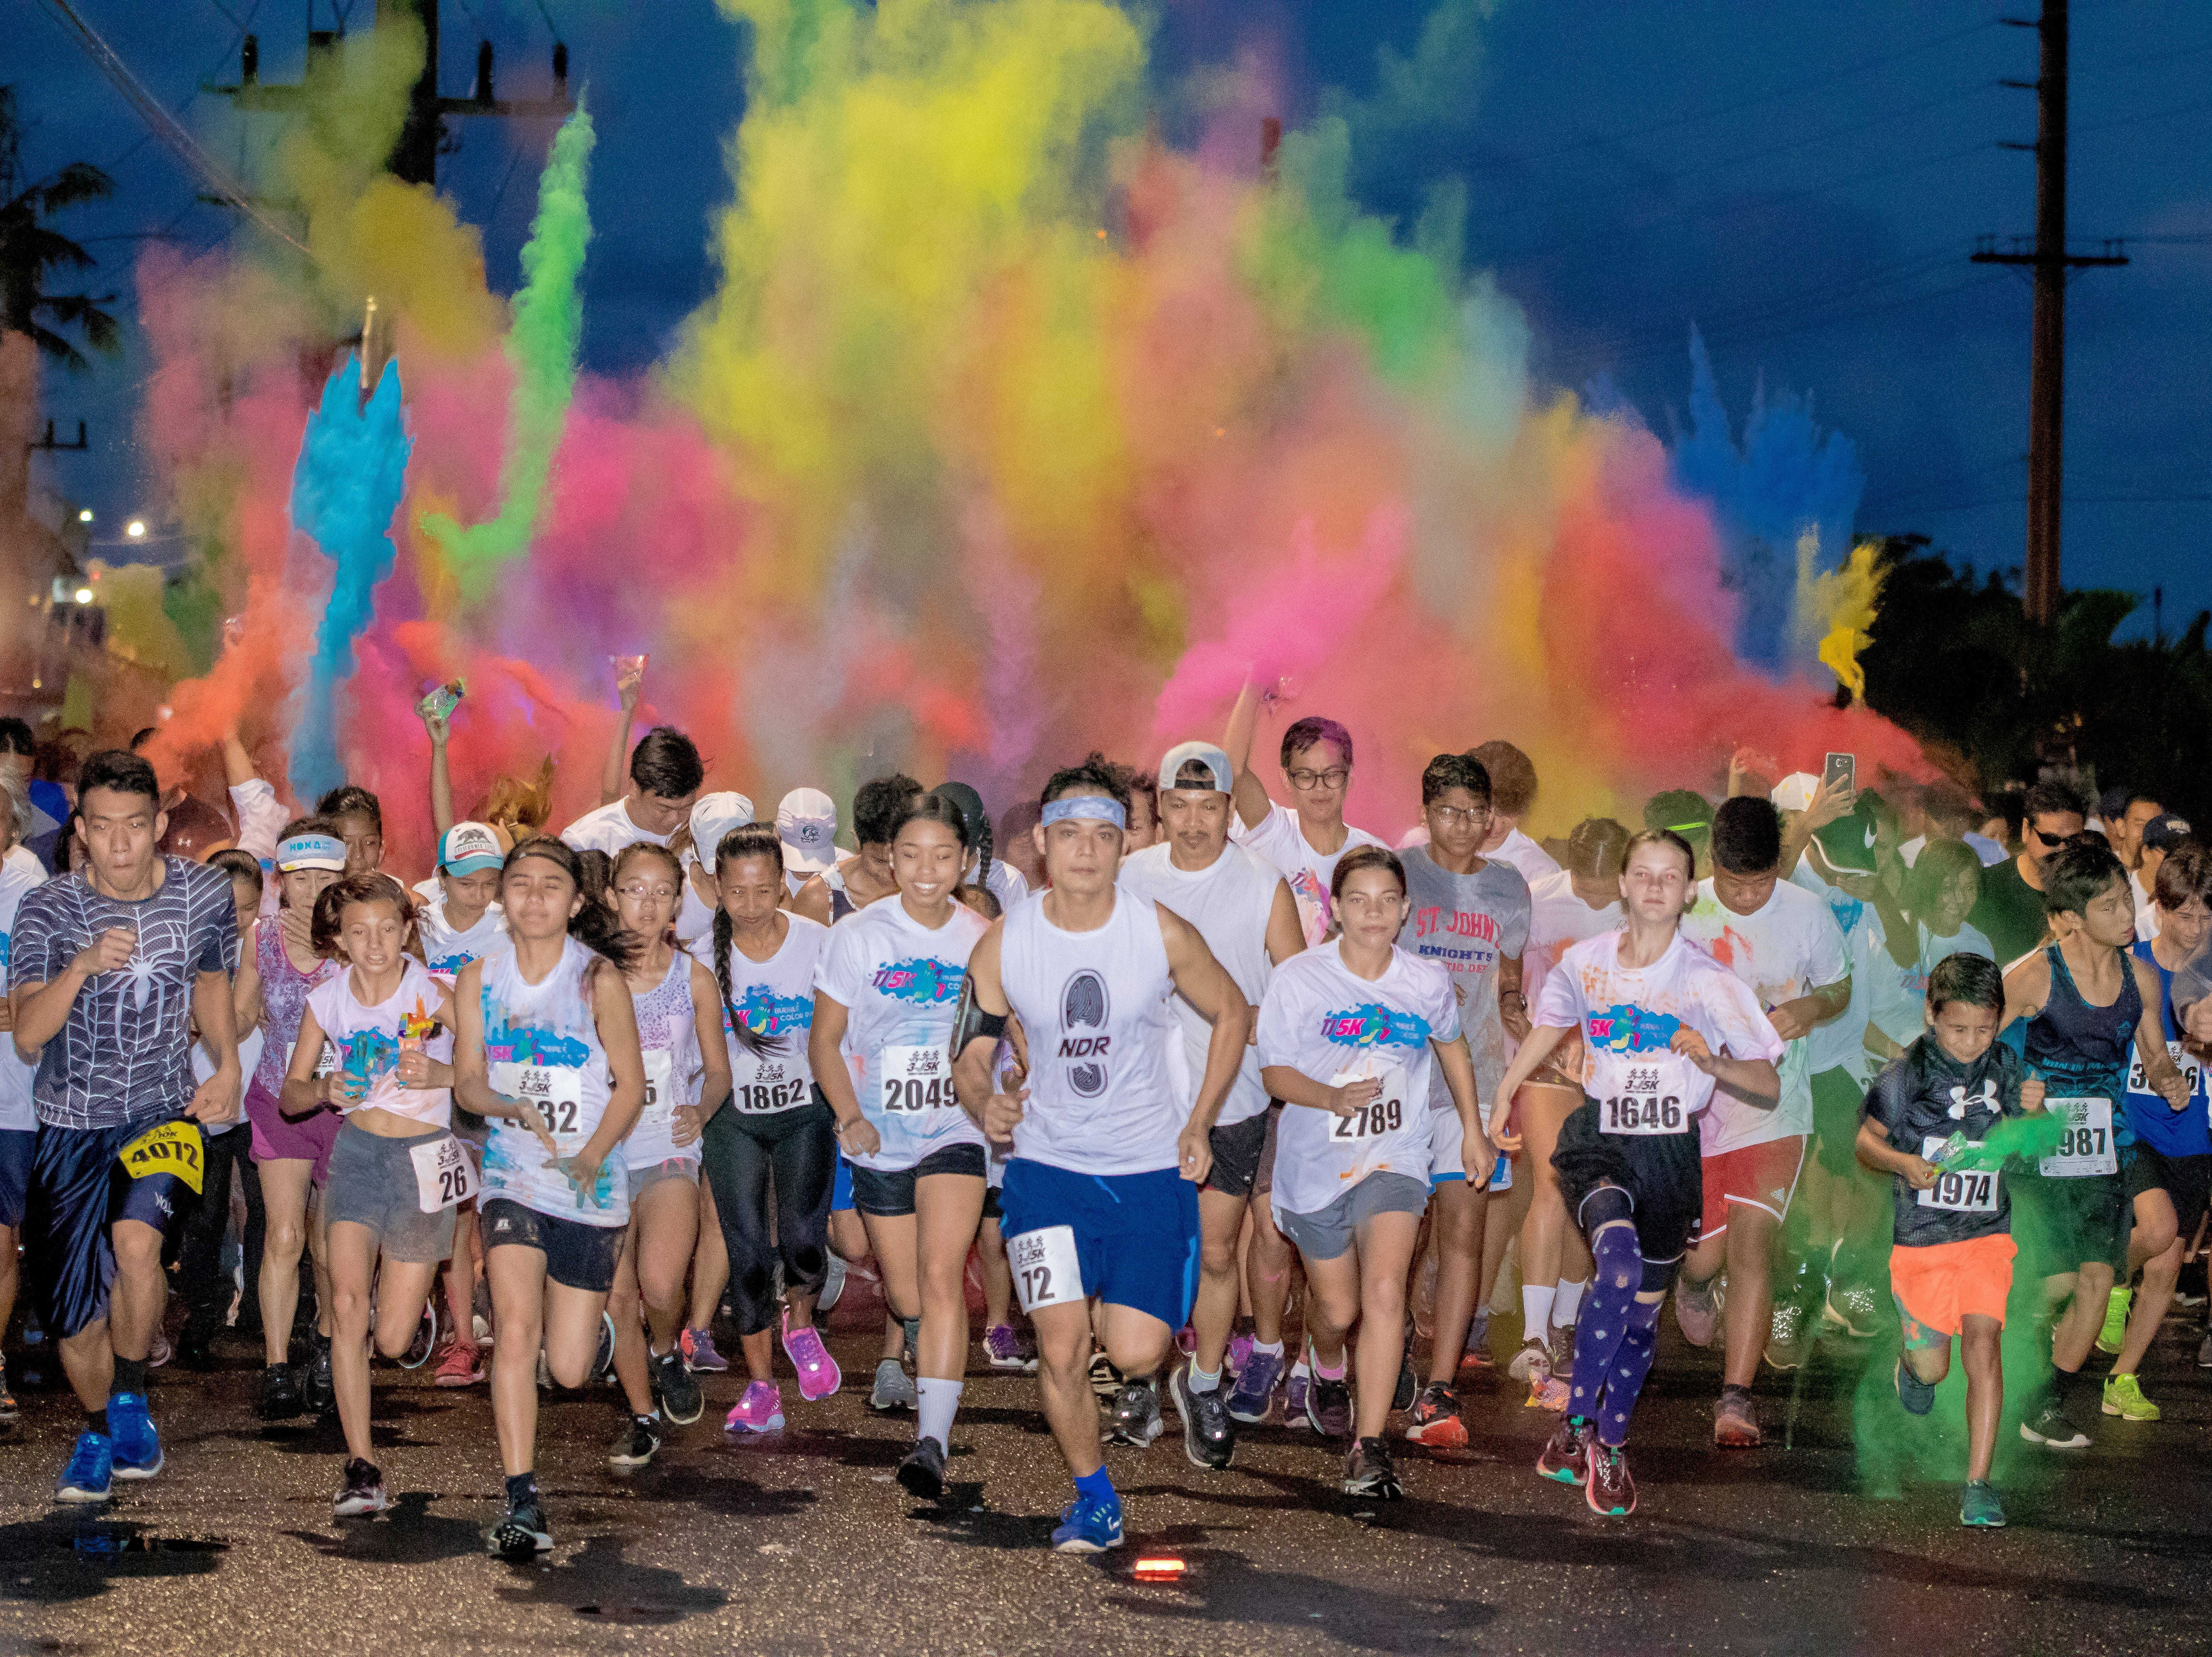 """Powdered colors brighten the dark skies as 5k participants take off during the start of the 13th Annual Triple J Family 10K/5K Run themed the """"Bubble Color Run"""" held at Tamuning on Nov. 17. Virgilio Valencia /For Pacific Daily News"""